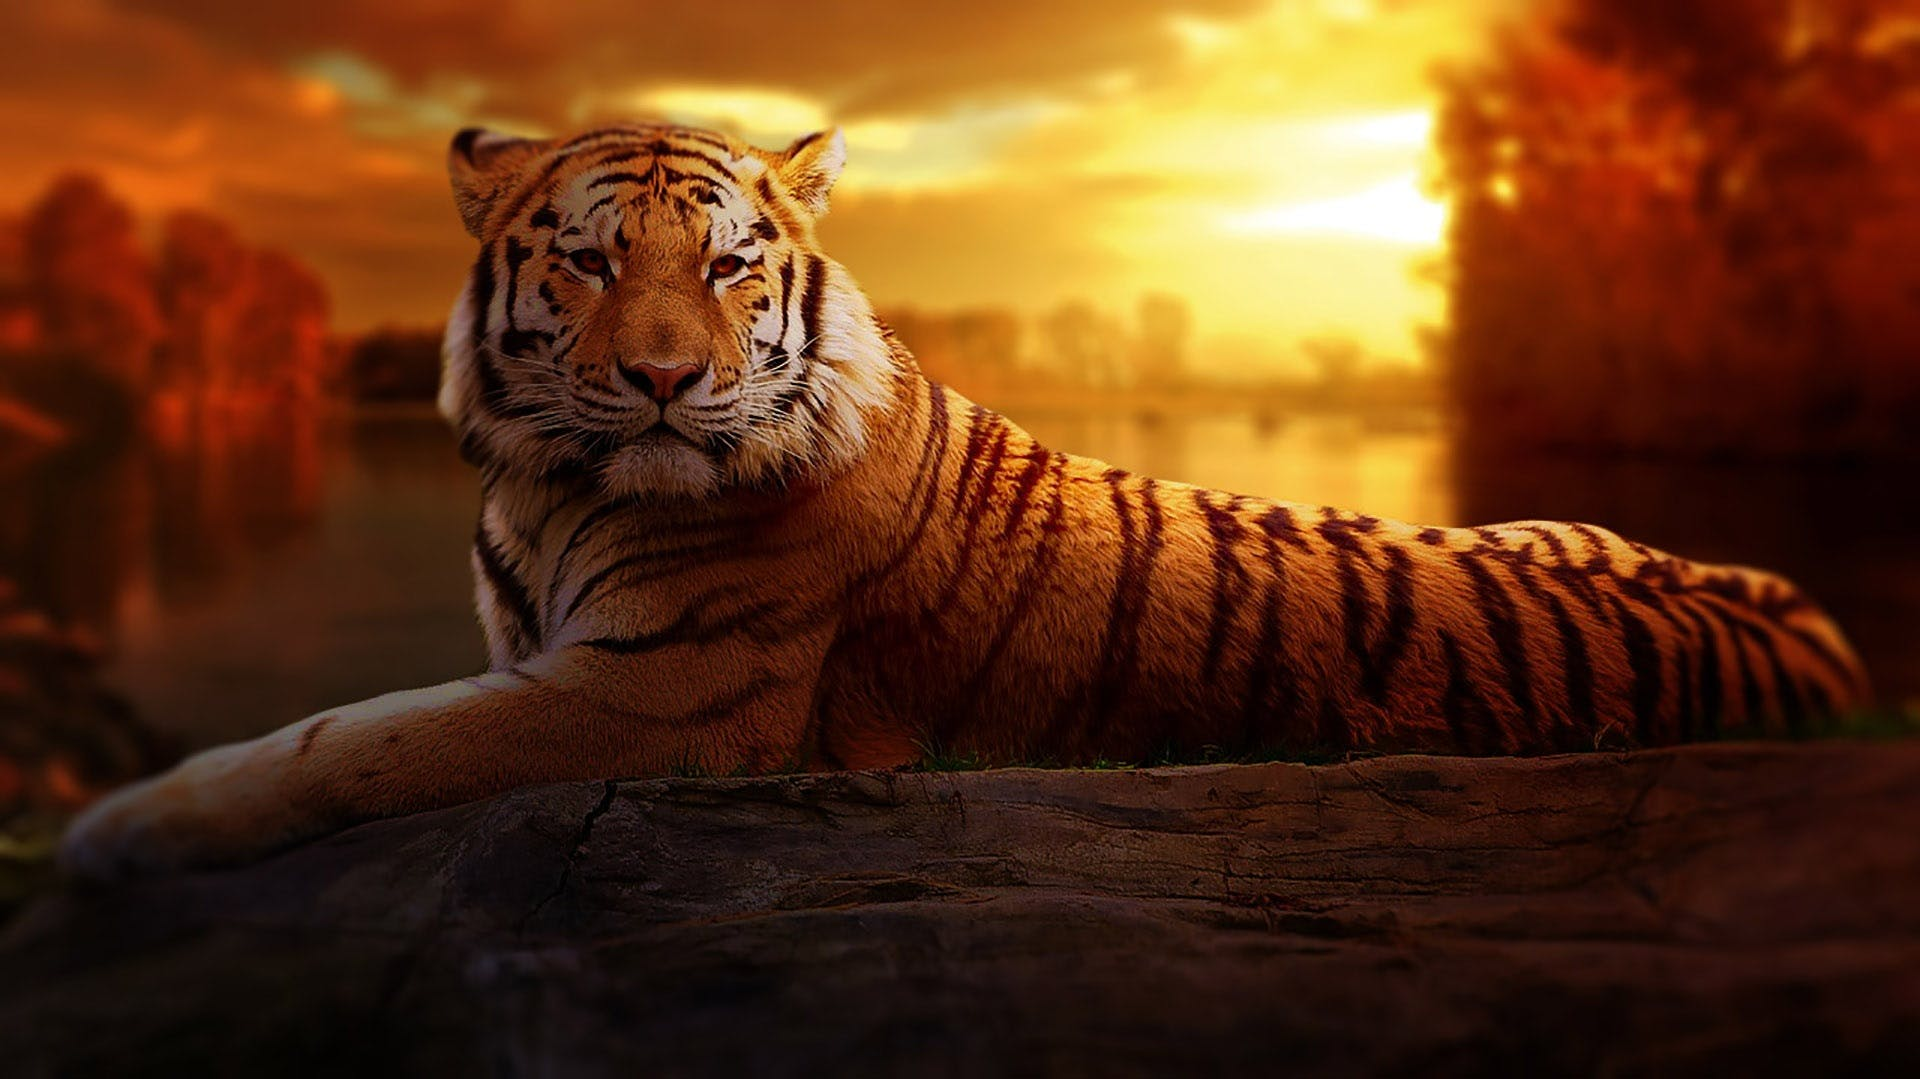 Free stock photo of sunset, animal, zoo, tiger